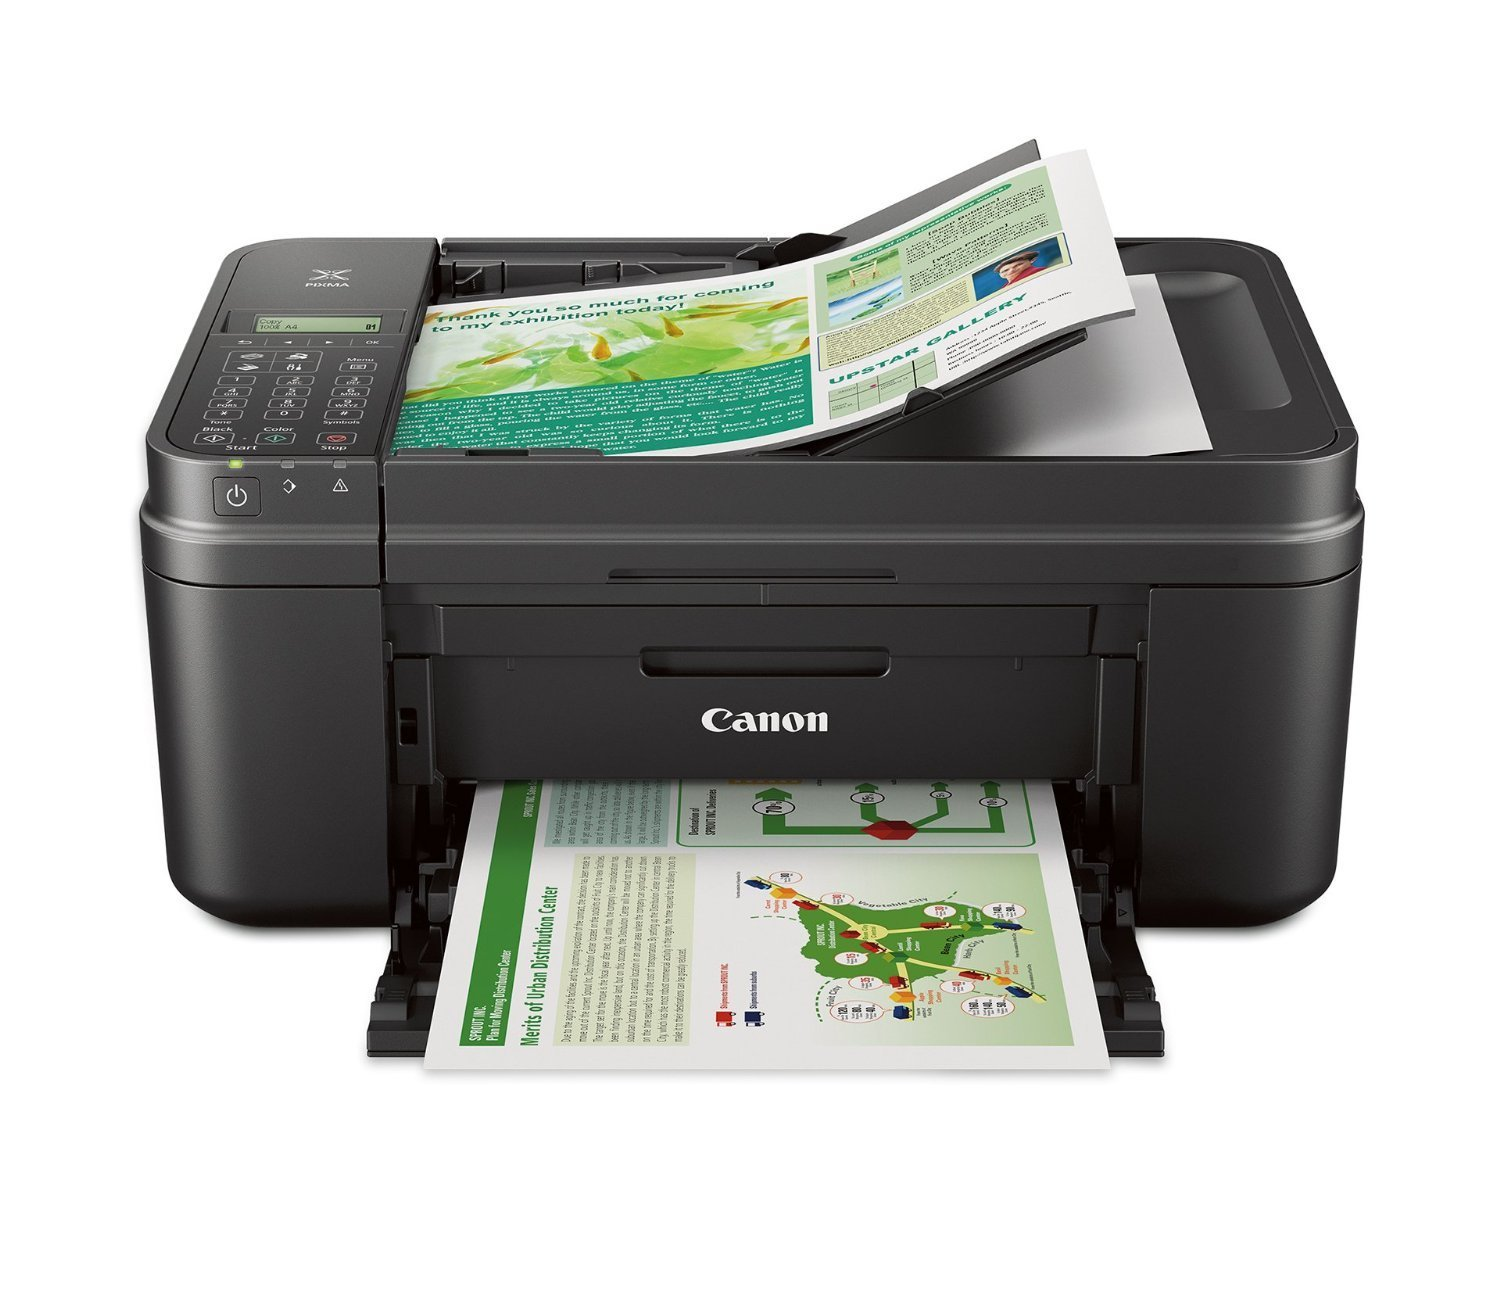 Printer Canon MX494 Driver for Linux Mint 18 How to Download and Install - Featured